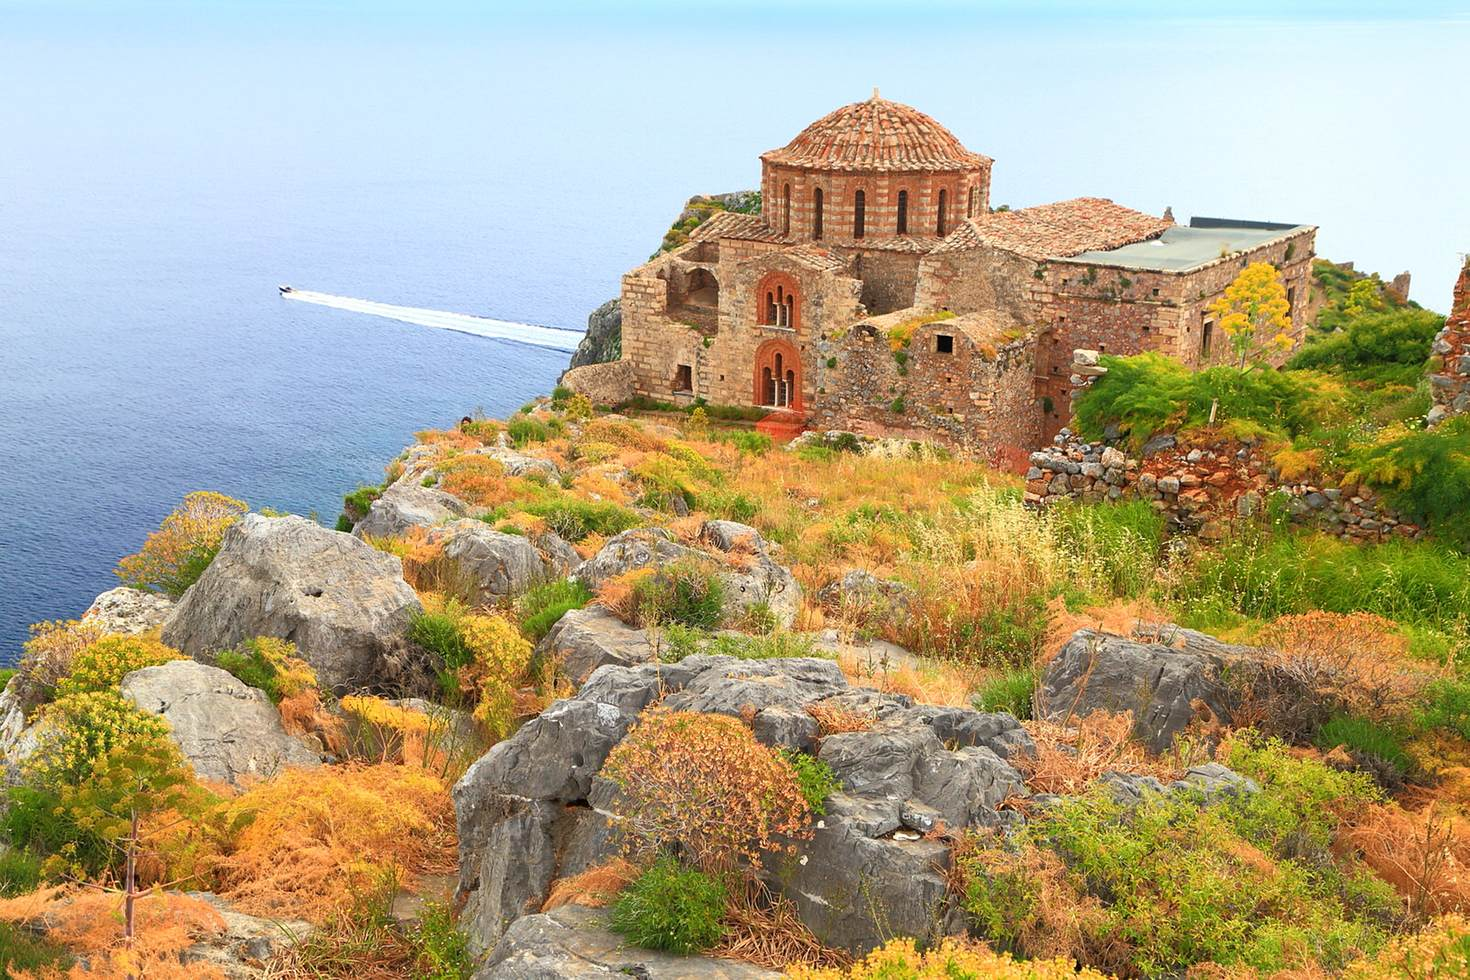 Clamber around the rock castle of Monemvasia